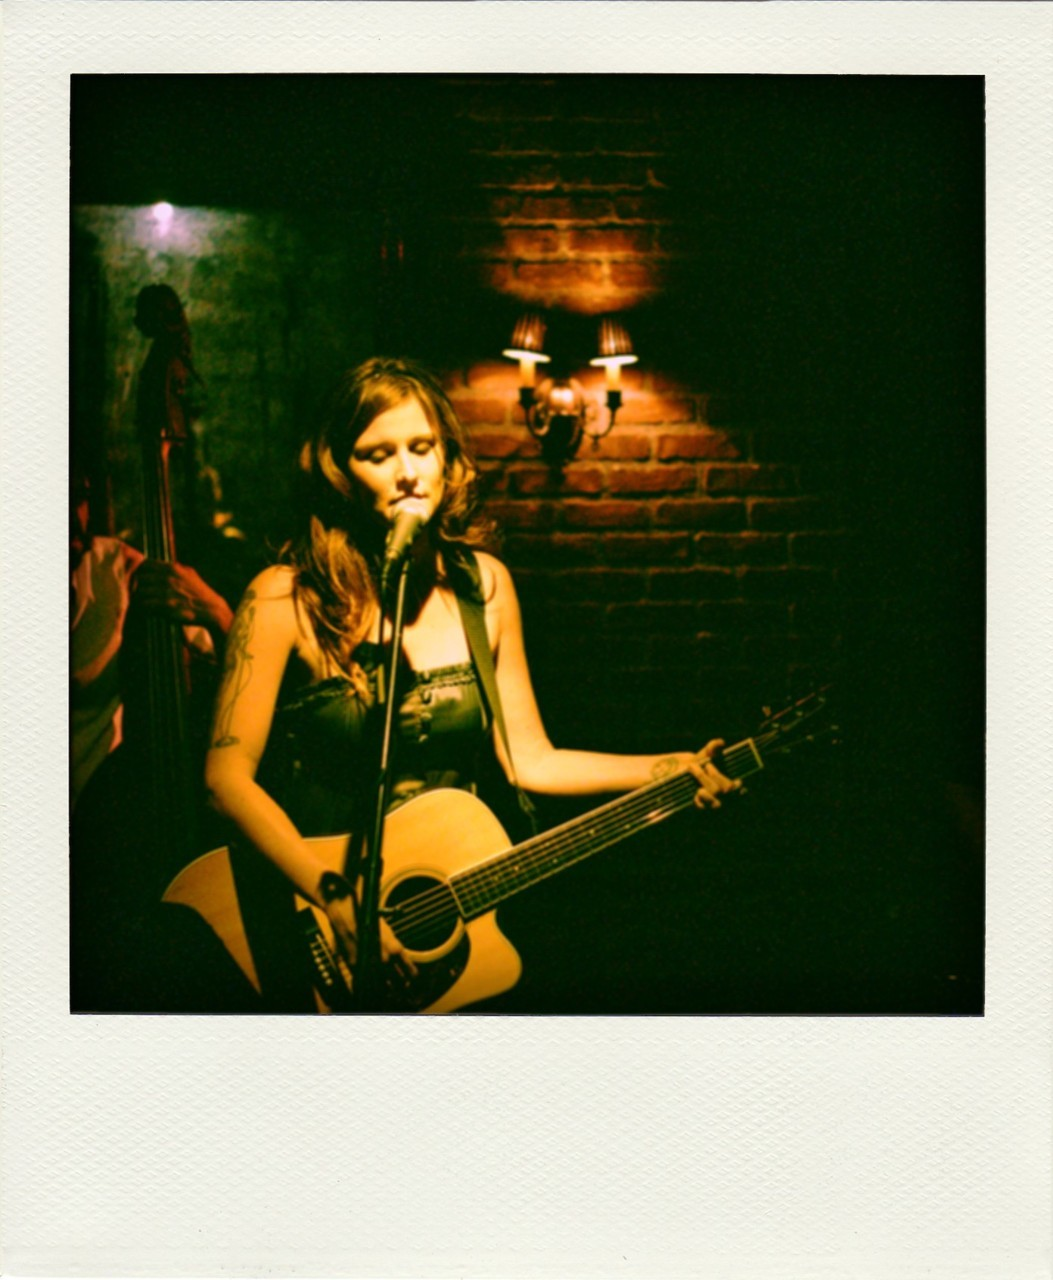 Brianna Rettig at Piano Bar playing a birthday show